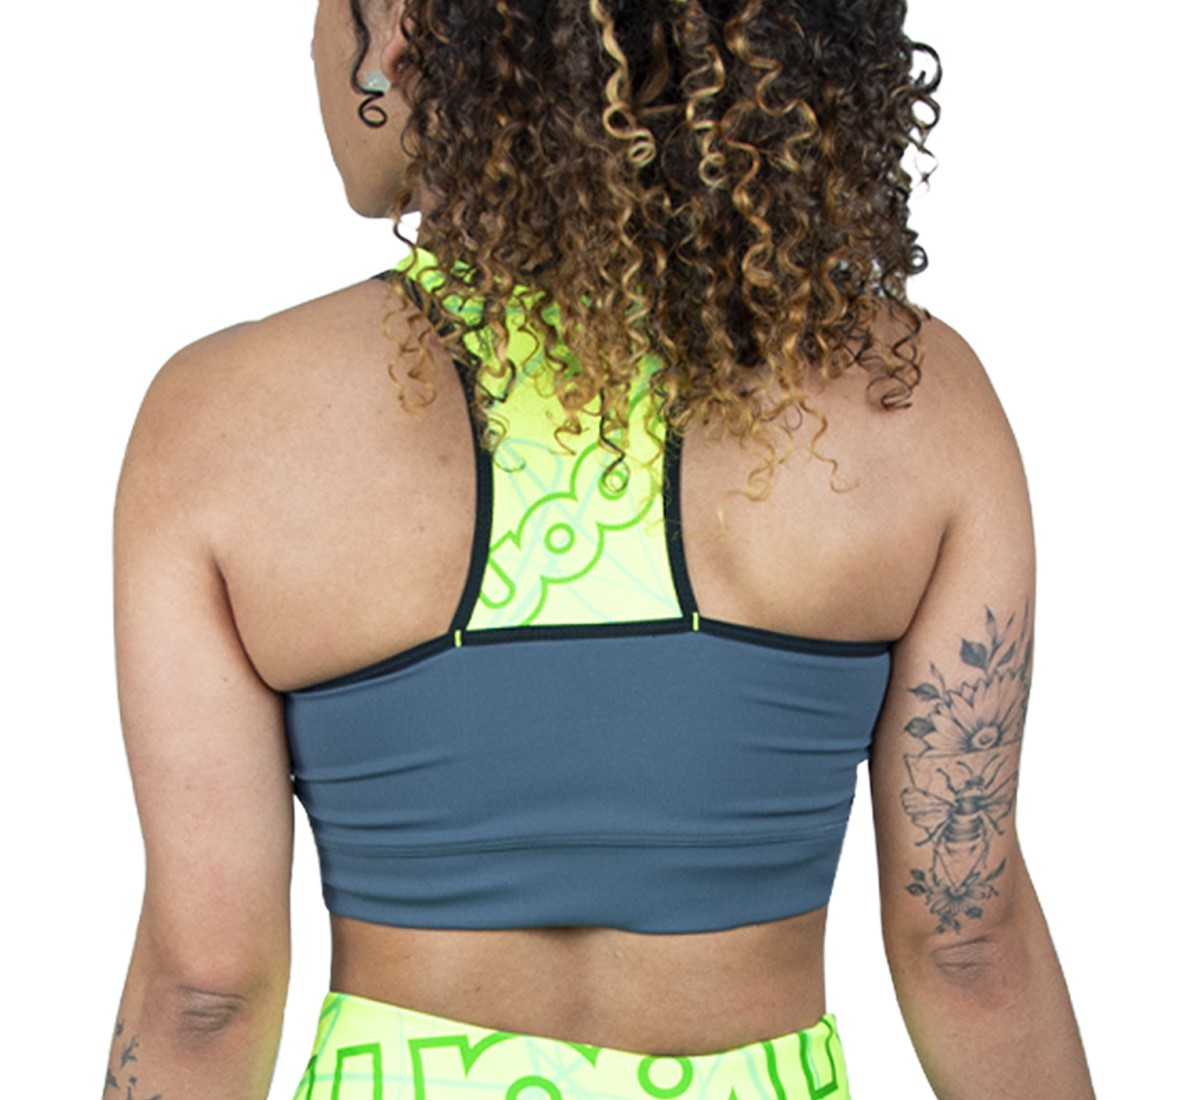 Top Running (Ed Ltda) X-fit Verde Fem 2021